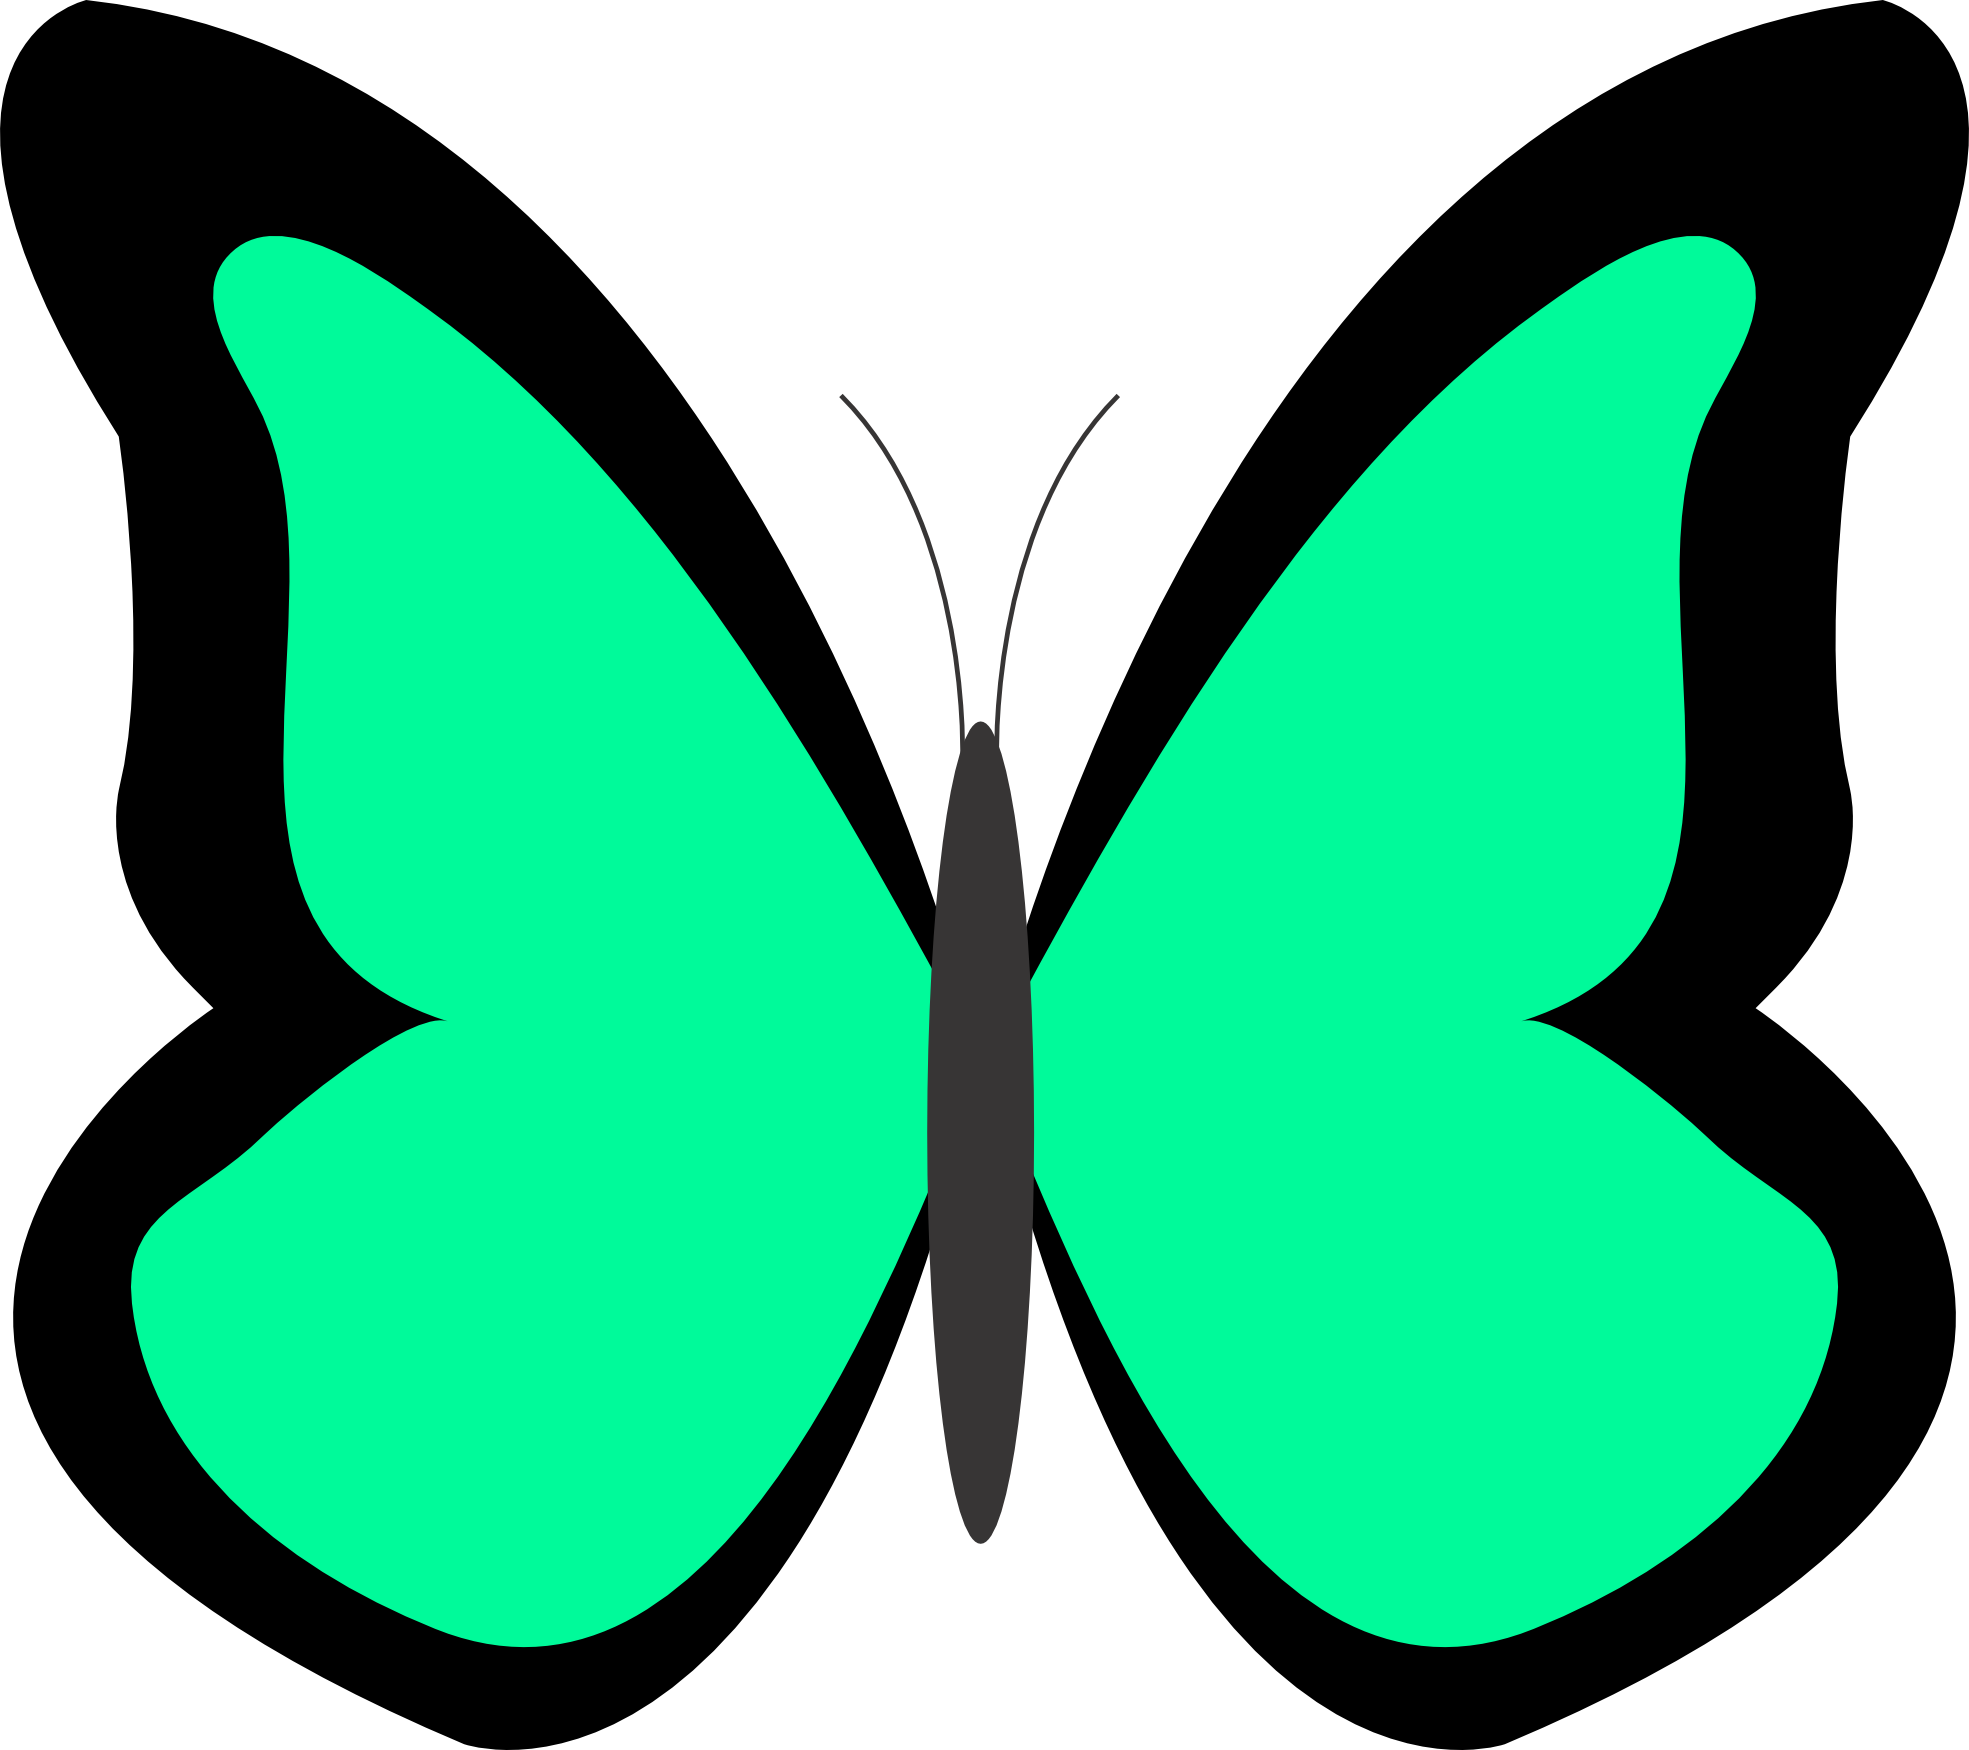 Lime green flower clipart banner royalty free Butterflies butterfly clip art butterfly clipart - Clipartix banner royalty free